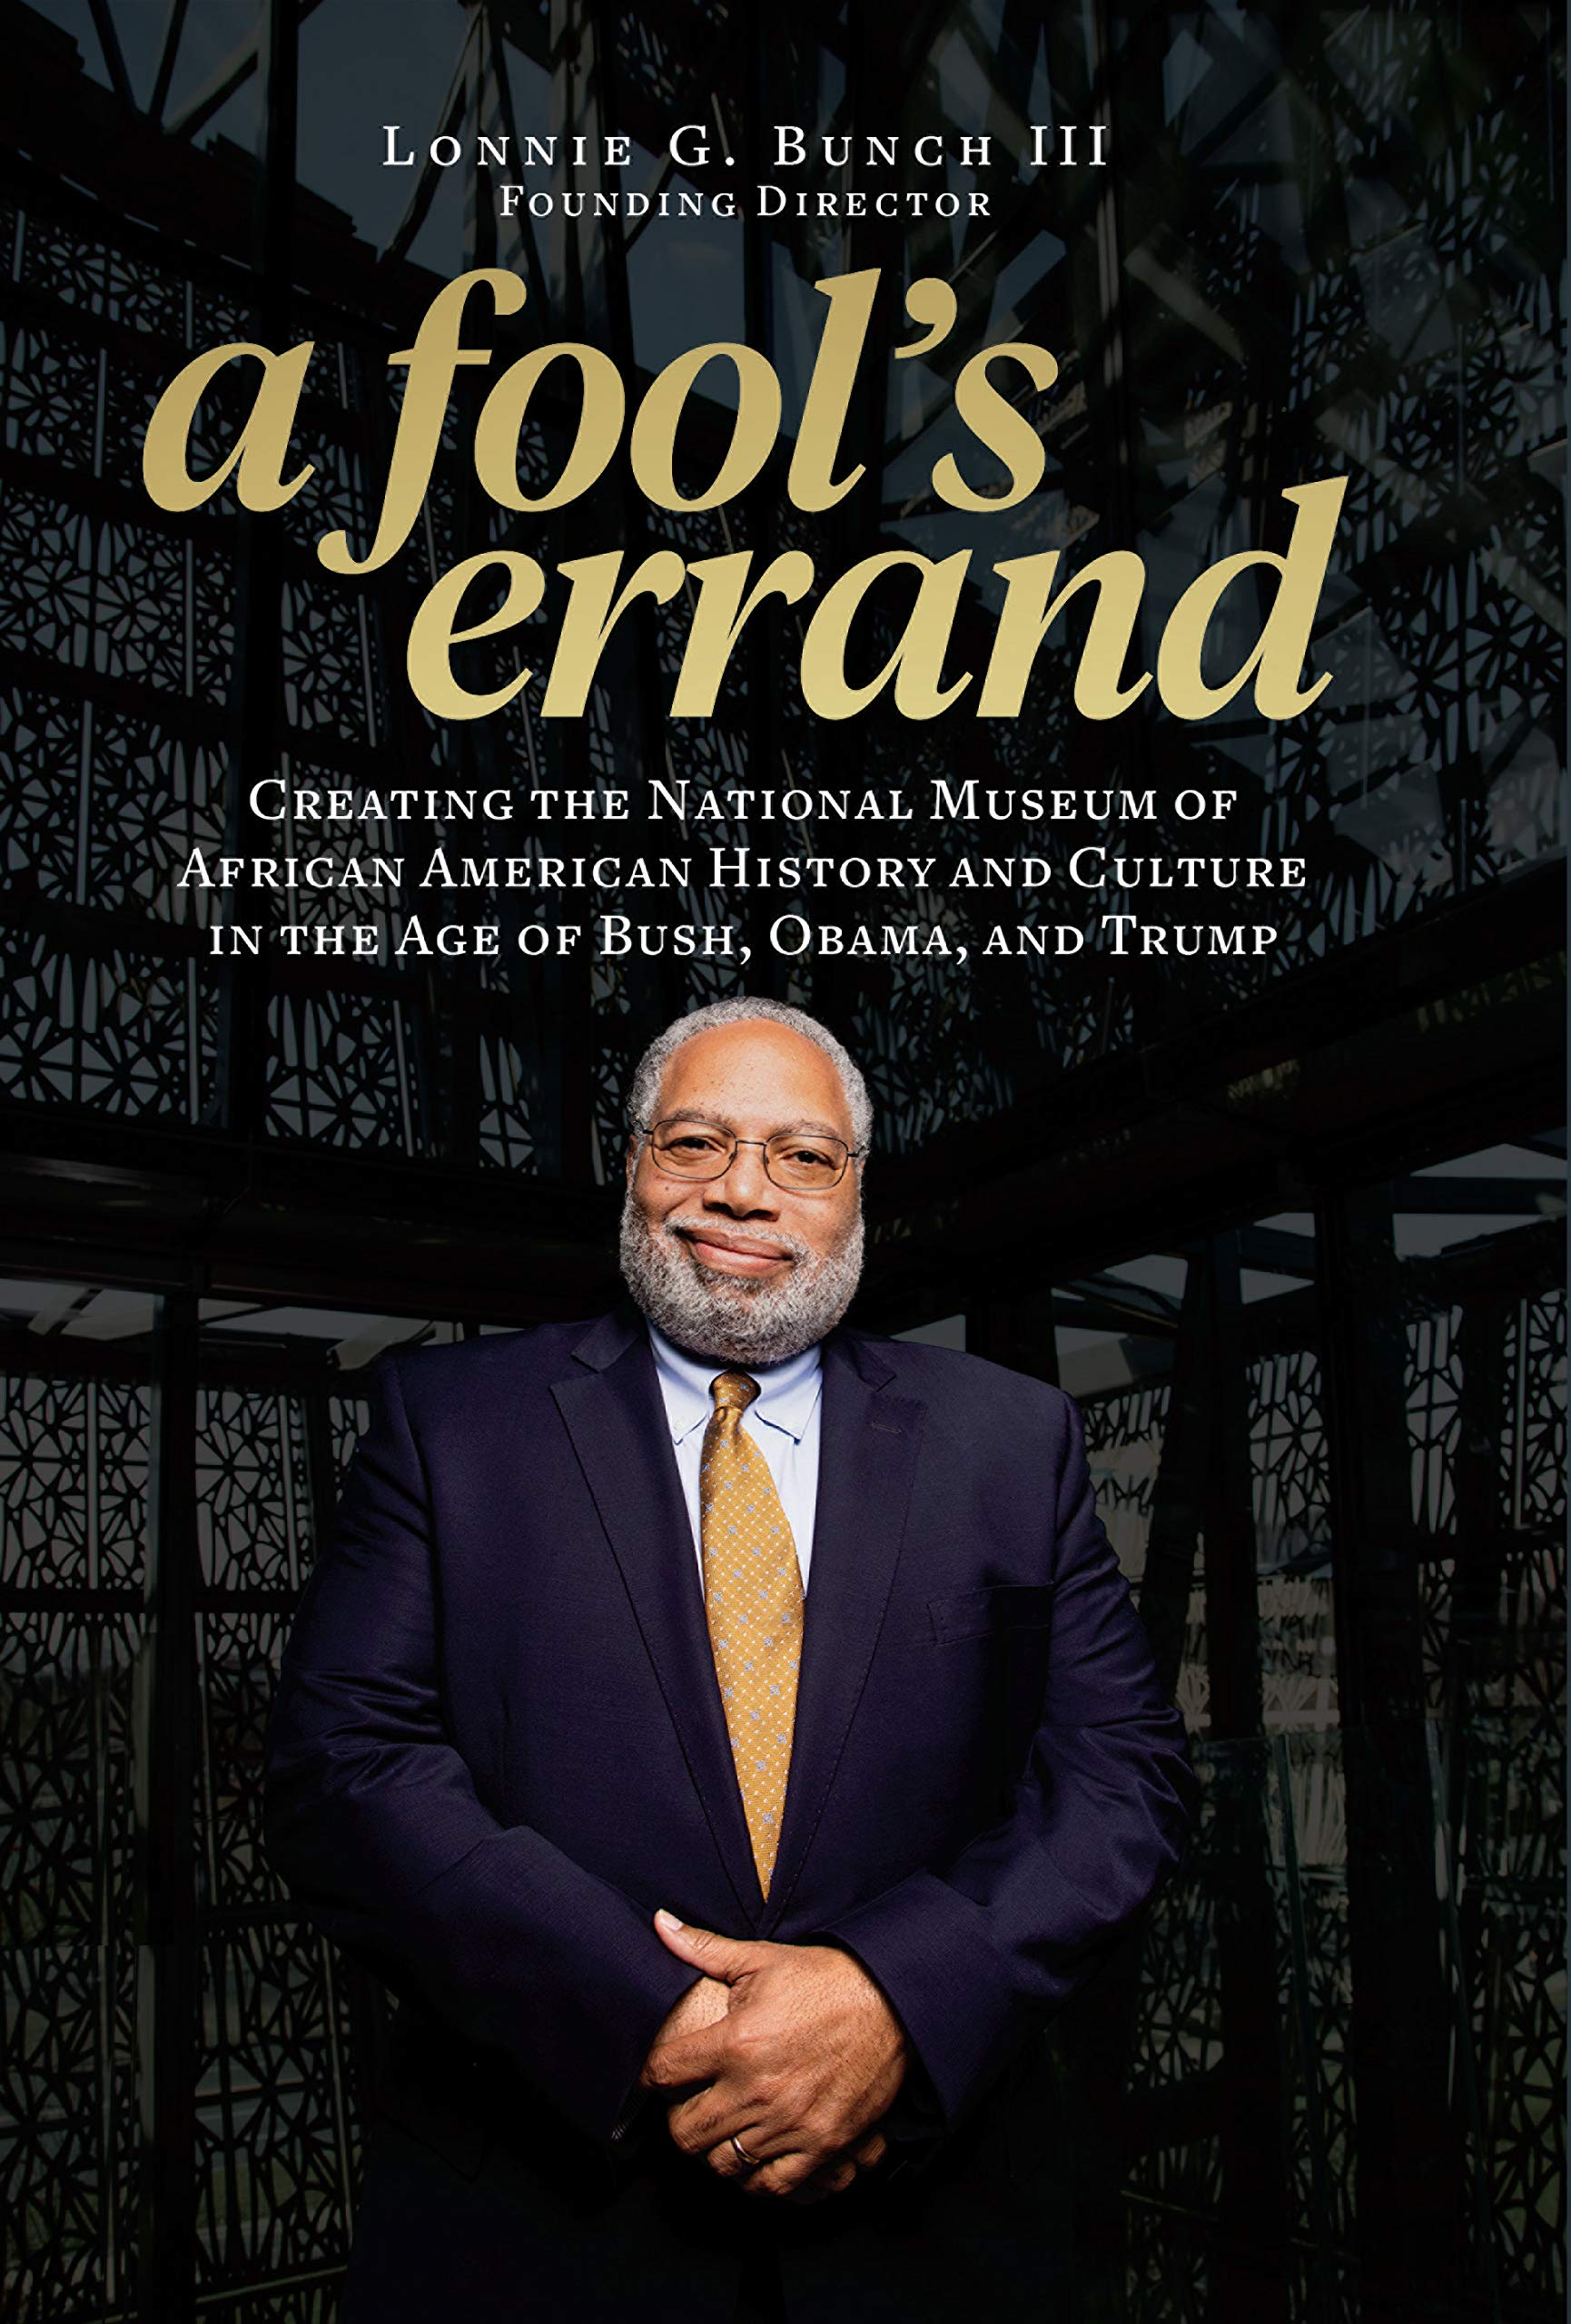 Image result for a fool's errand lonnie bunch